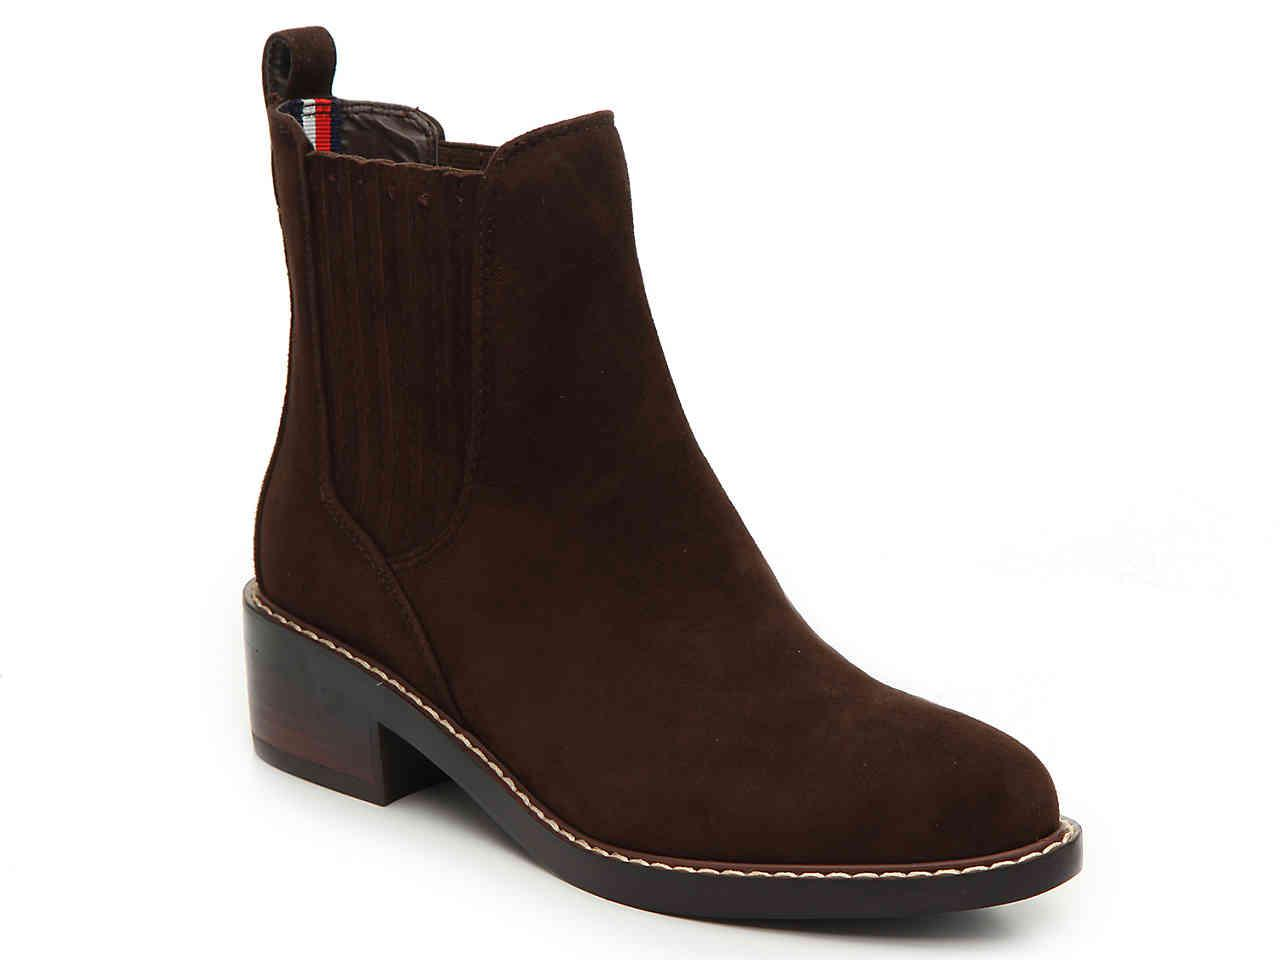 eb5d2974 Tommy Hilfiger Wezley Chelsea Boot in Brown - Lyst